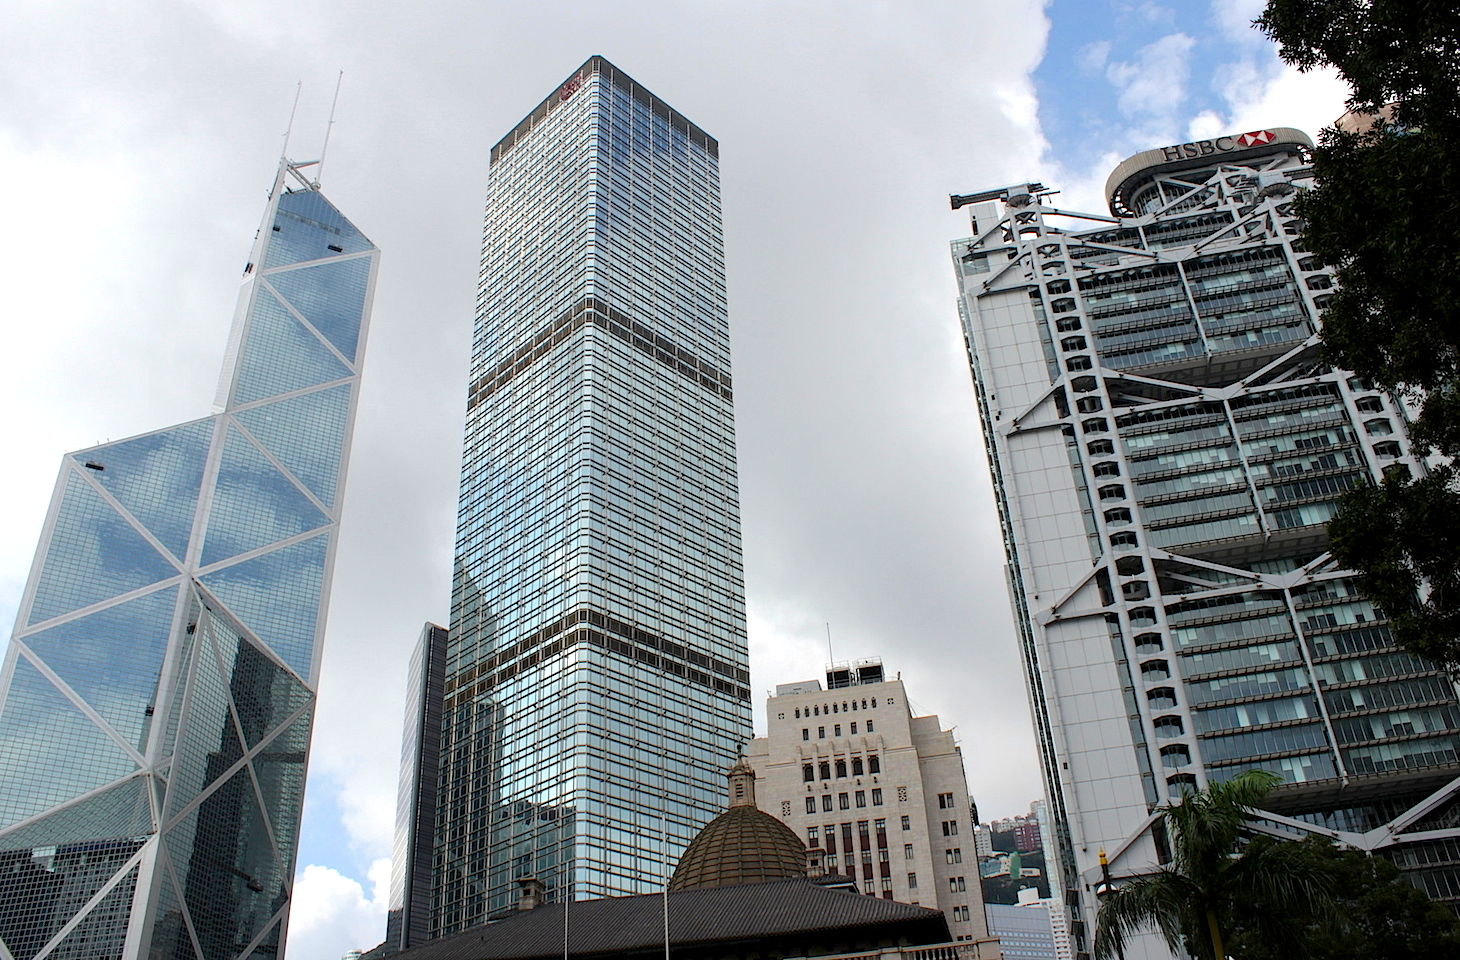 20 Norman Fosters Building Architecture Designs likewise A Stroll Through Colonial Hong Kong And Kowloon also Organisation further HSBC 20Main 20Building besides Joseph Maria Olbrich Secession Gallery. on norman foster hong kong bank